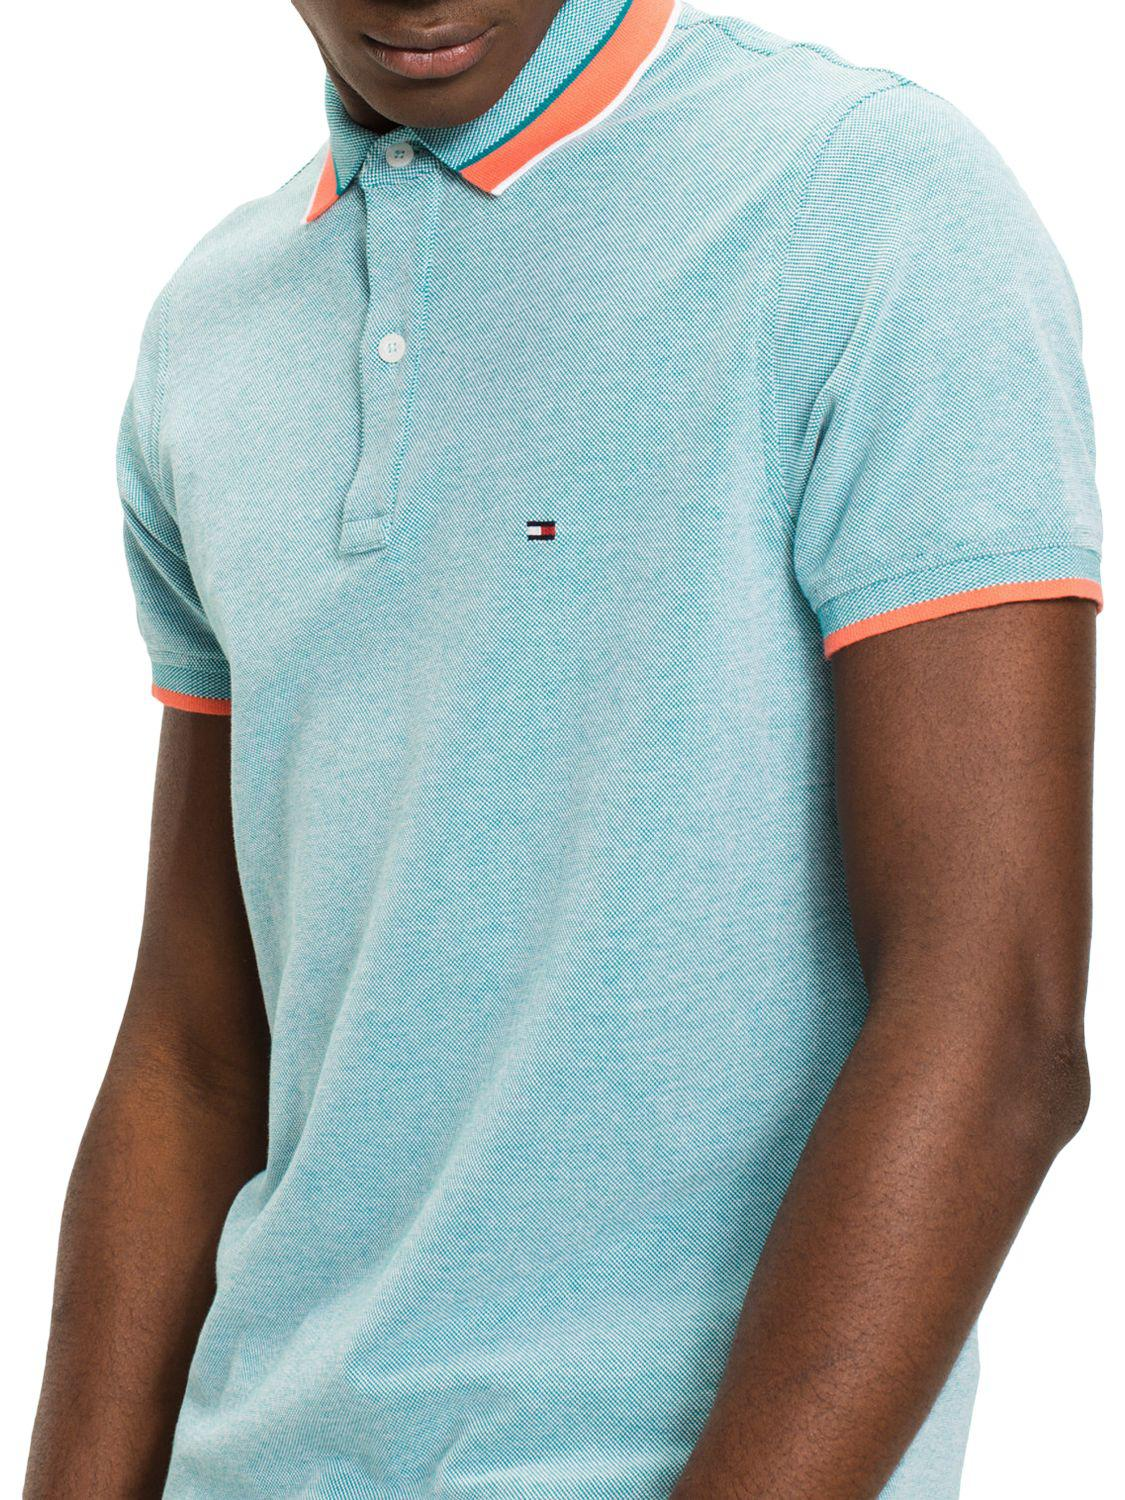 45a5a0a9 Tommy Hilfiger Oxford Tipped Slim Polo Shirt in Blue for Men - Lyst